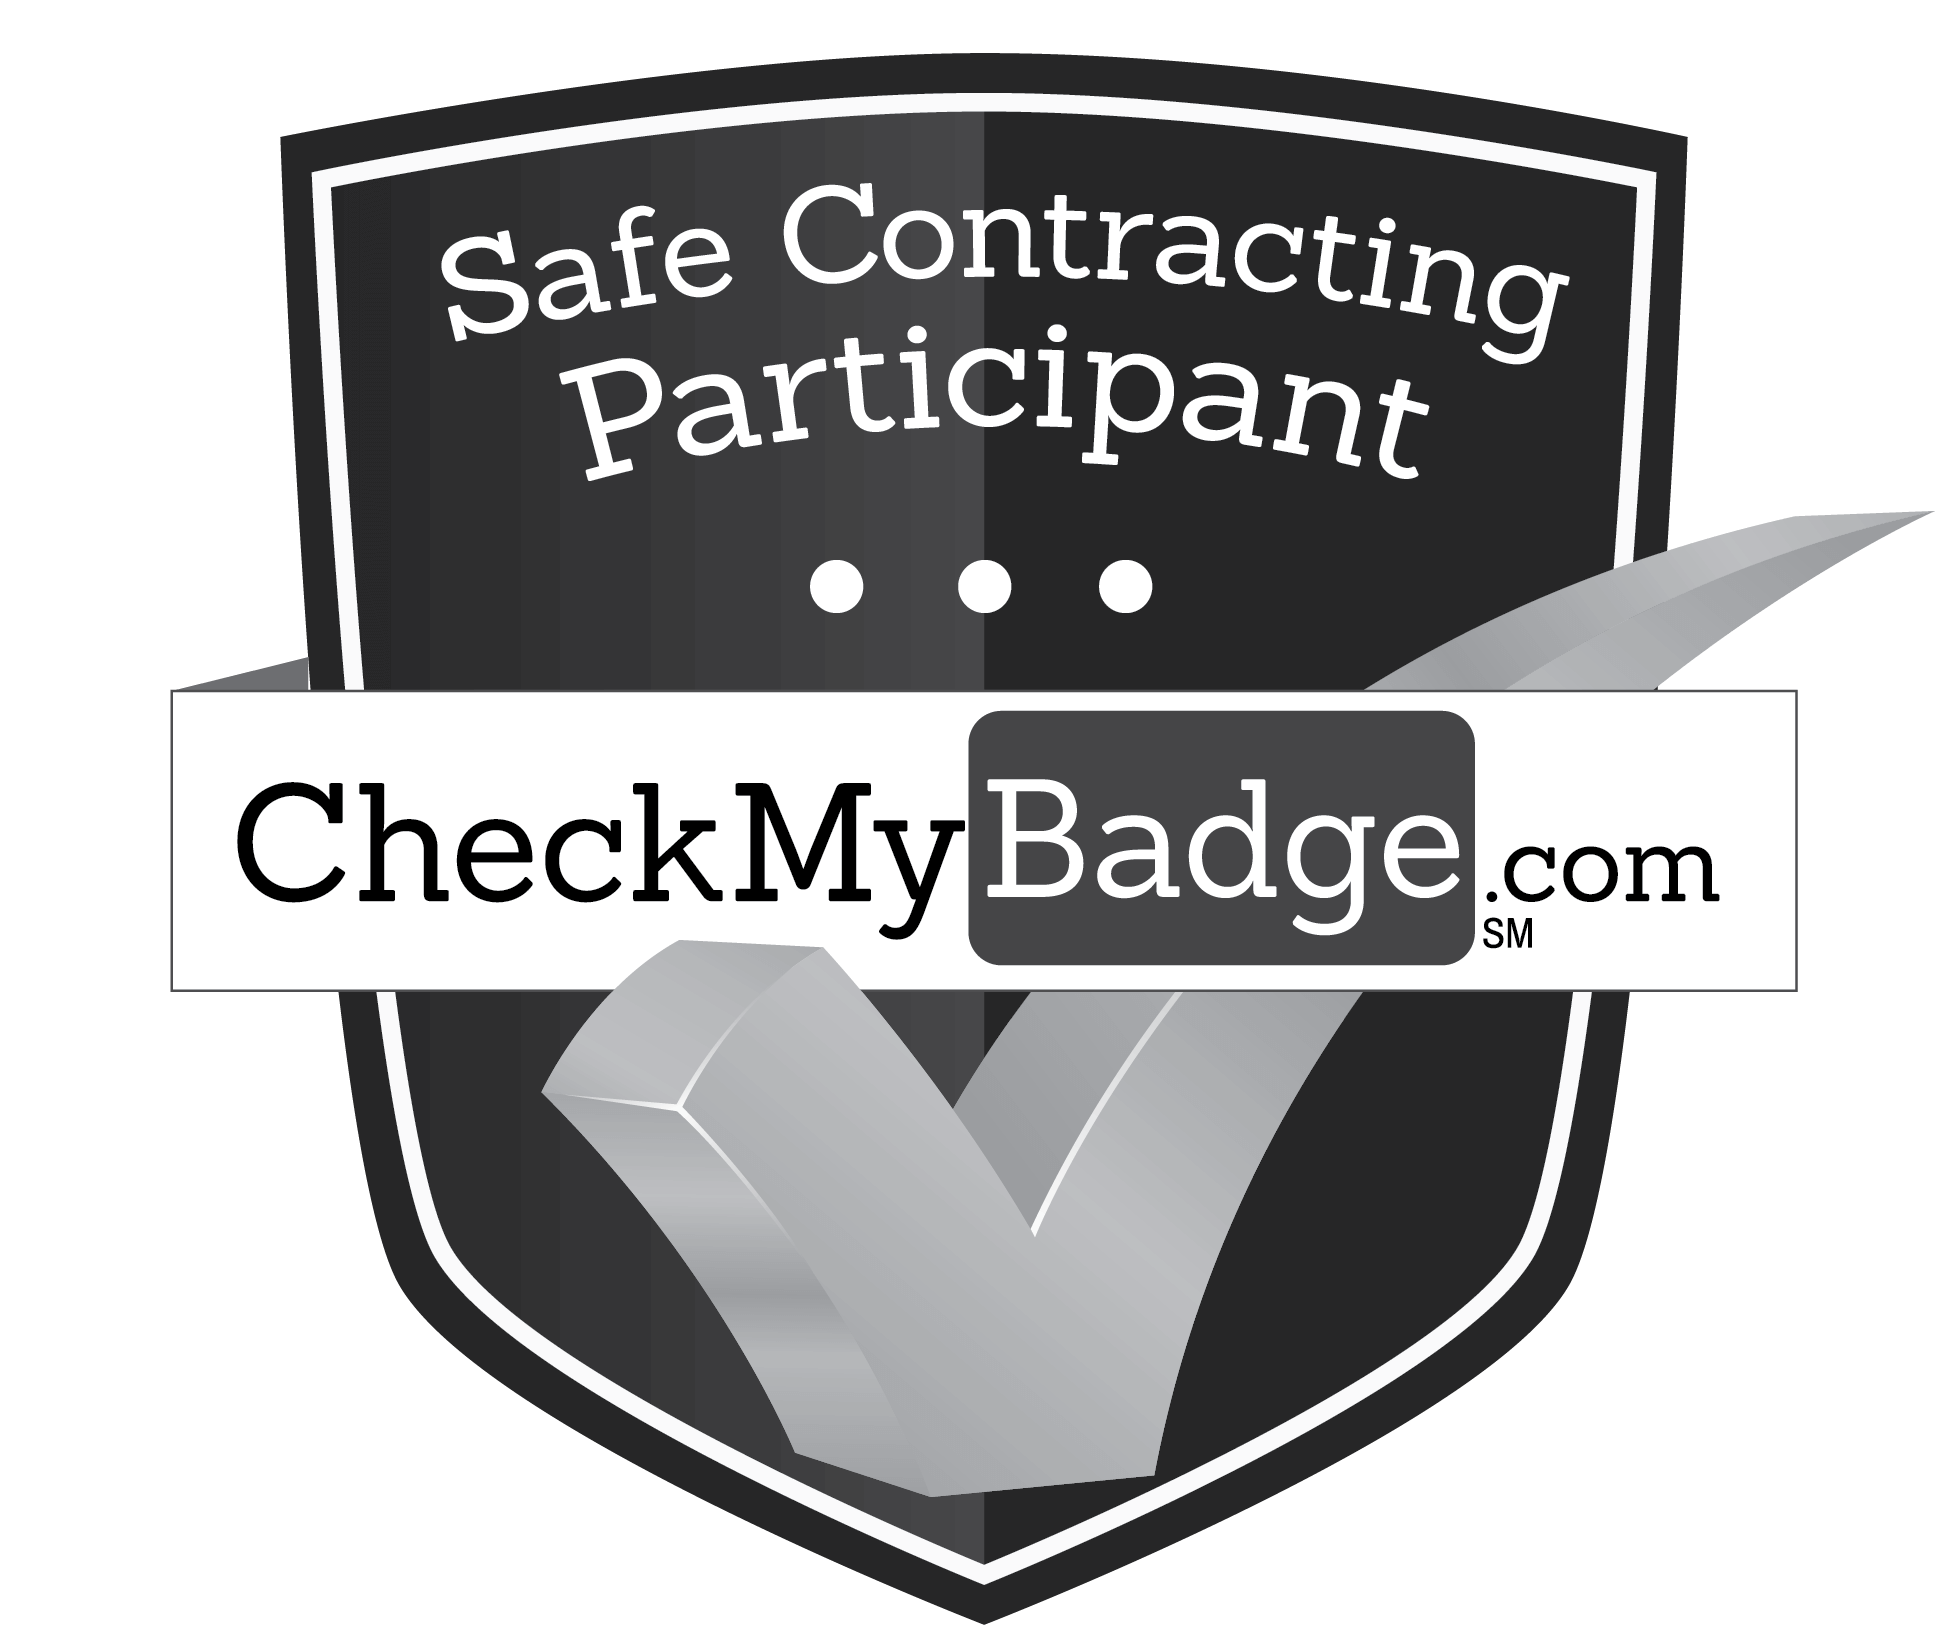 Safe Contracting Participant CheckMyBadge.com